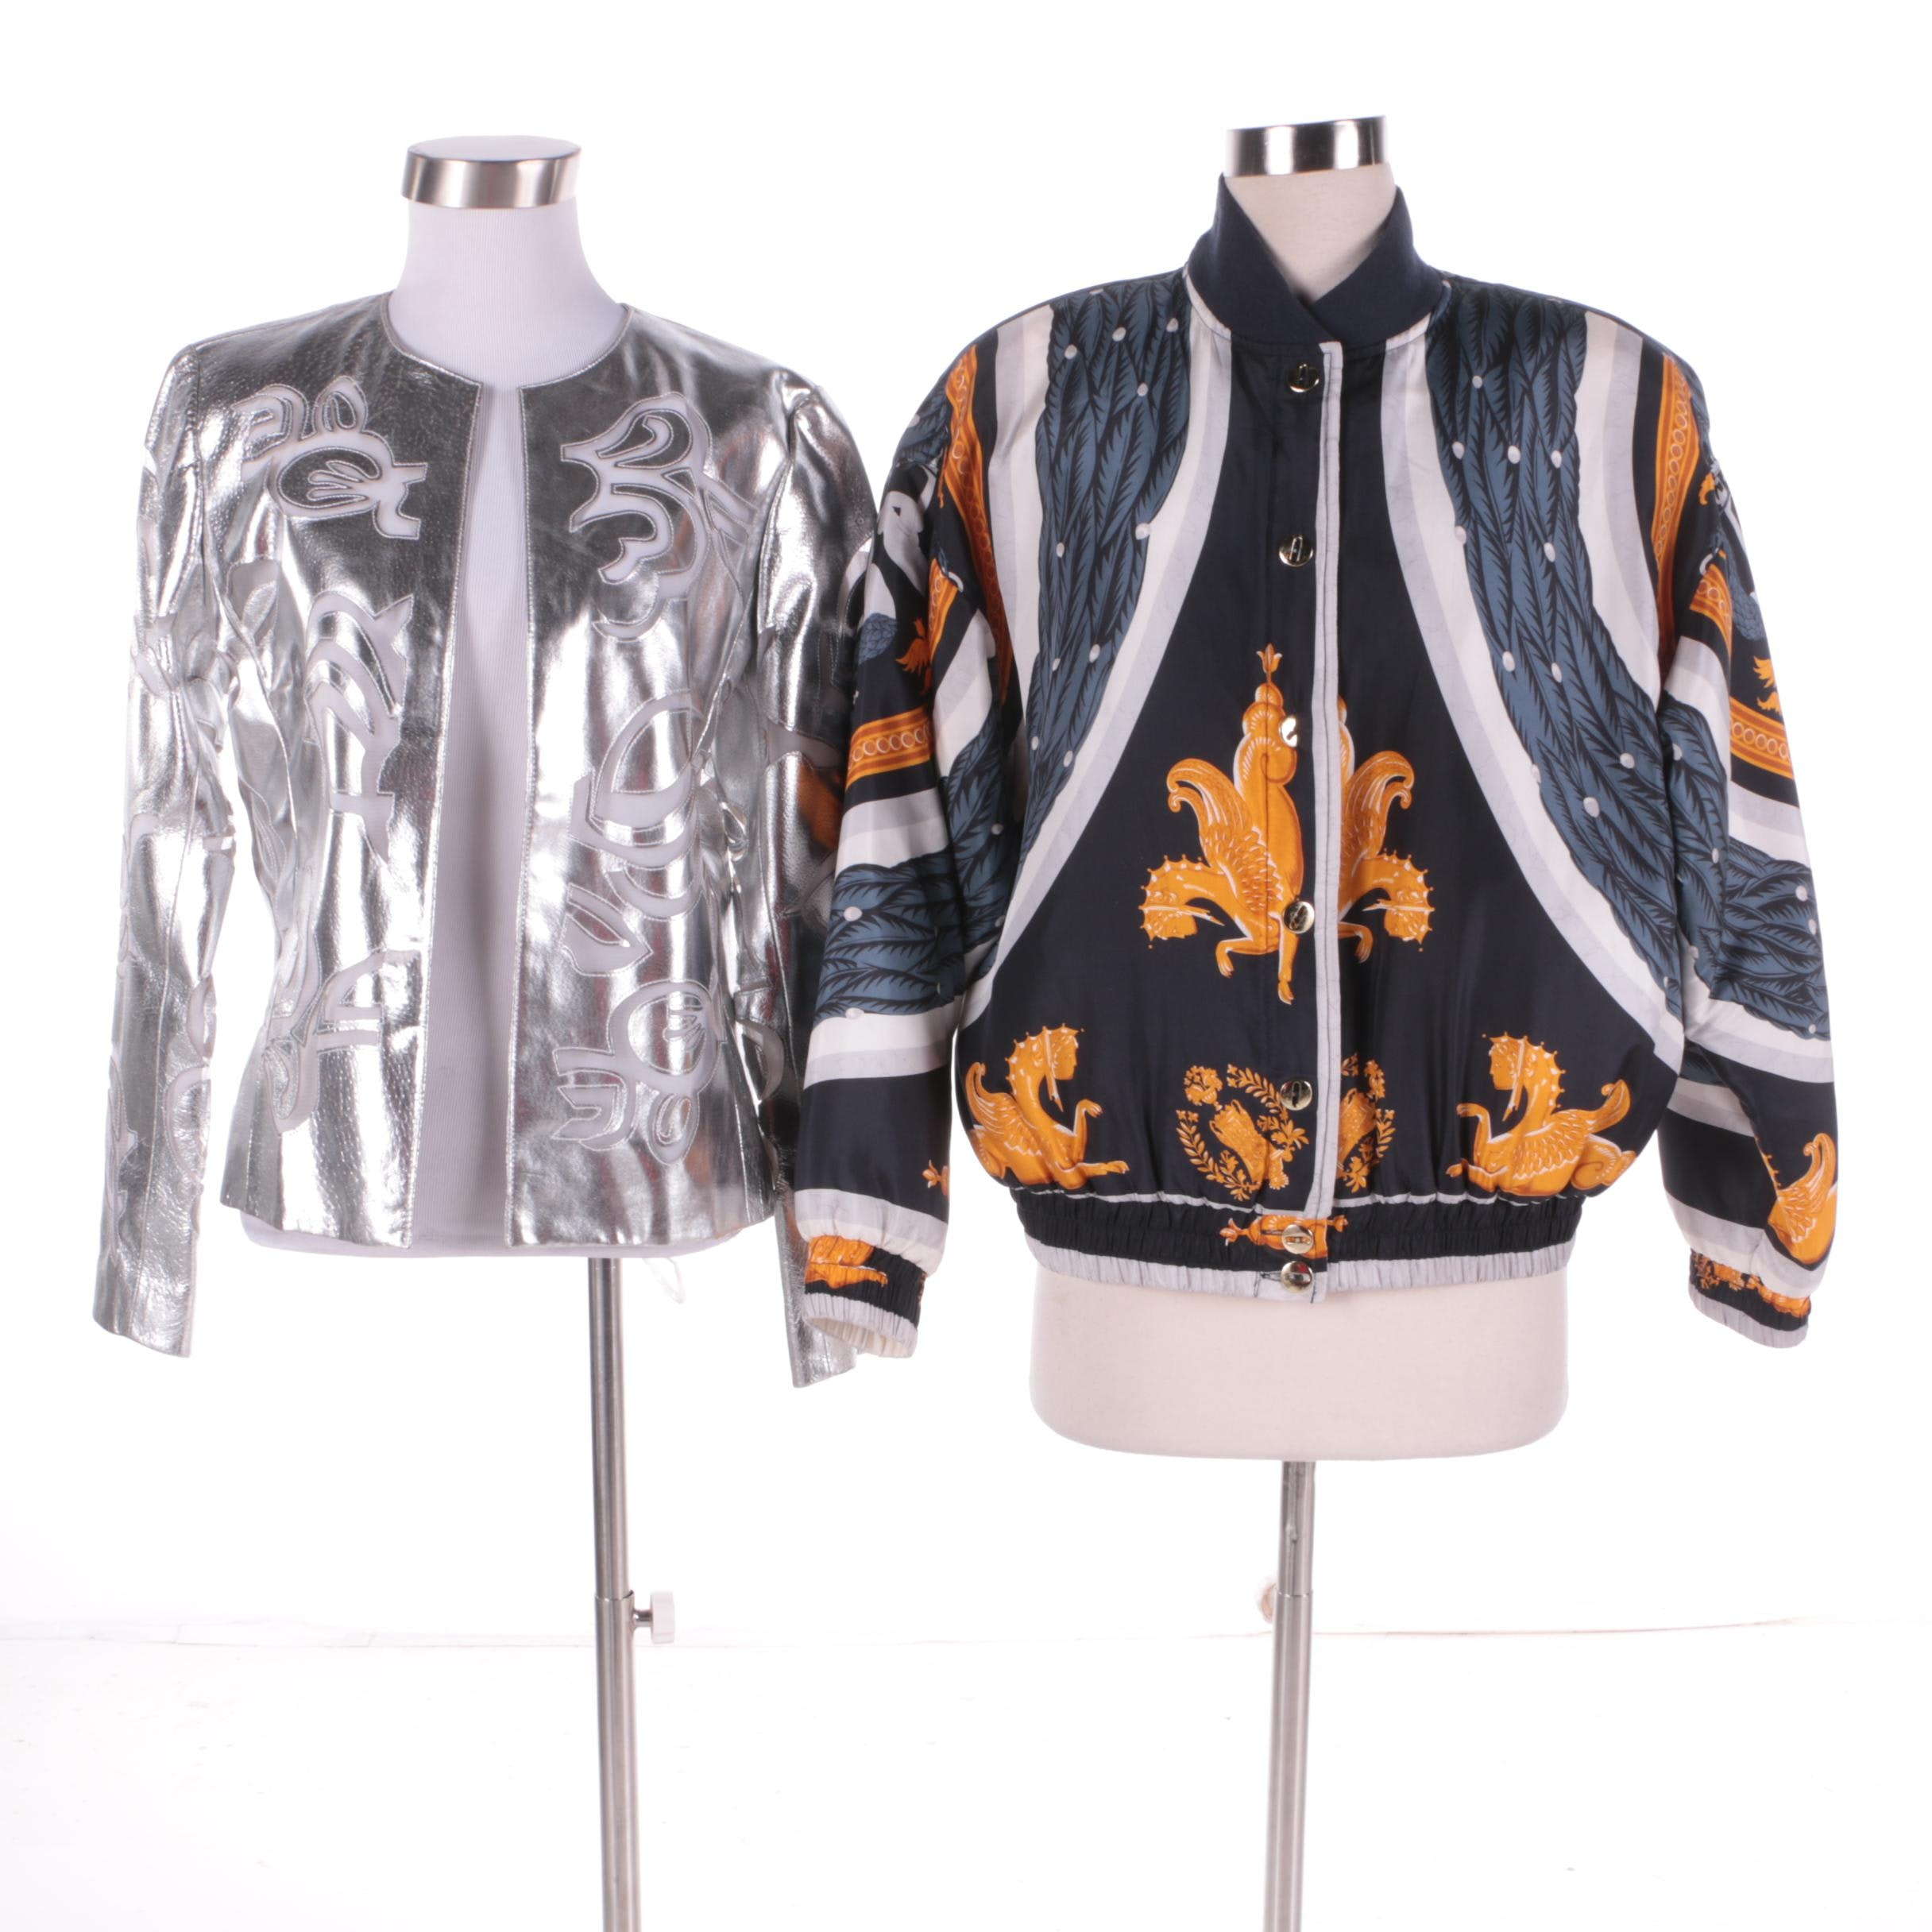 Women's Jackets Including Neiman Marcus and Chico's